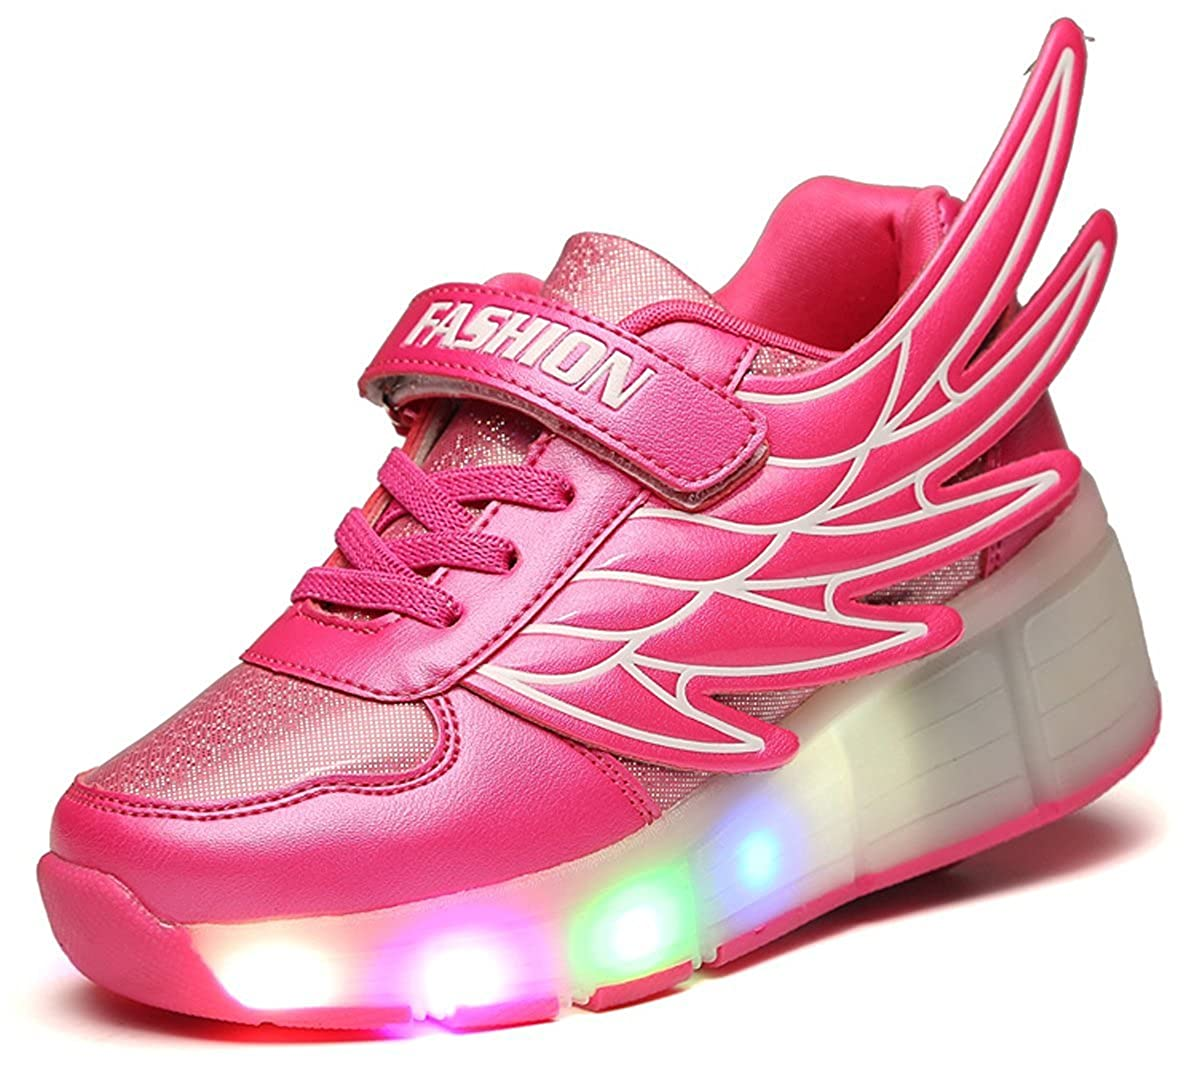 LED Light Up Roller Wheel Shoes Athletic Sneaker Sport Shoe Dance Boot Kid Wing Christmas Halloween Gift